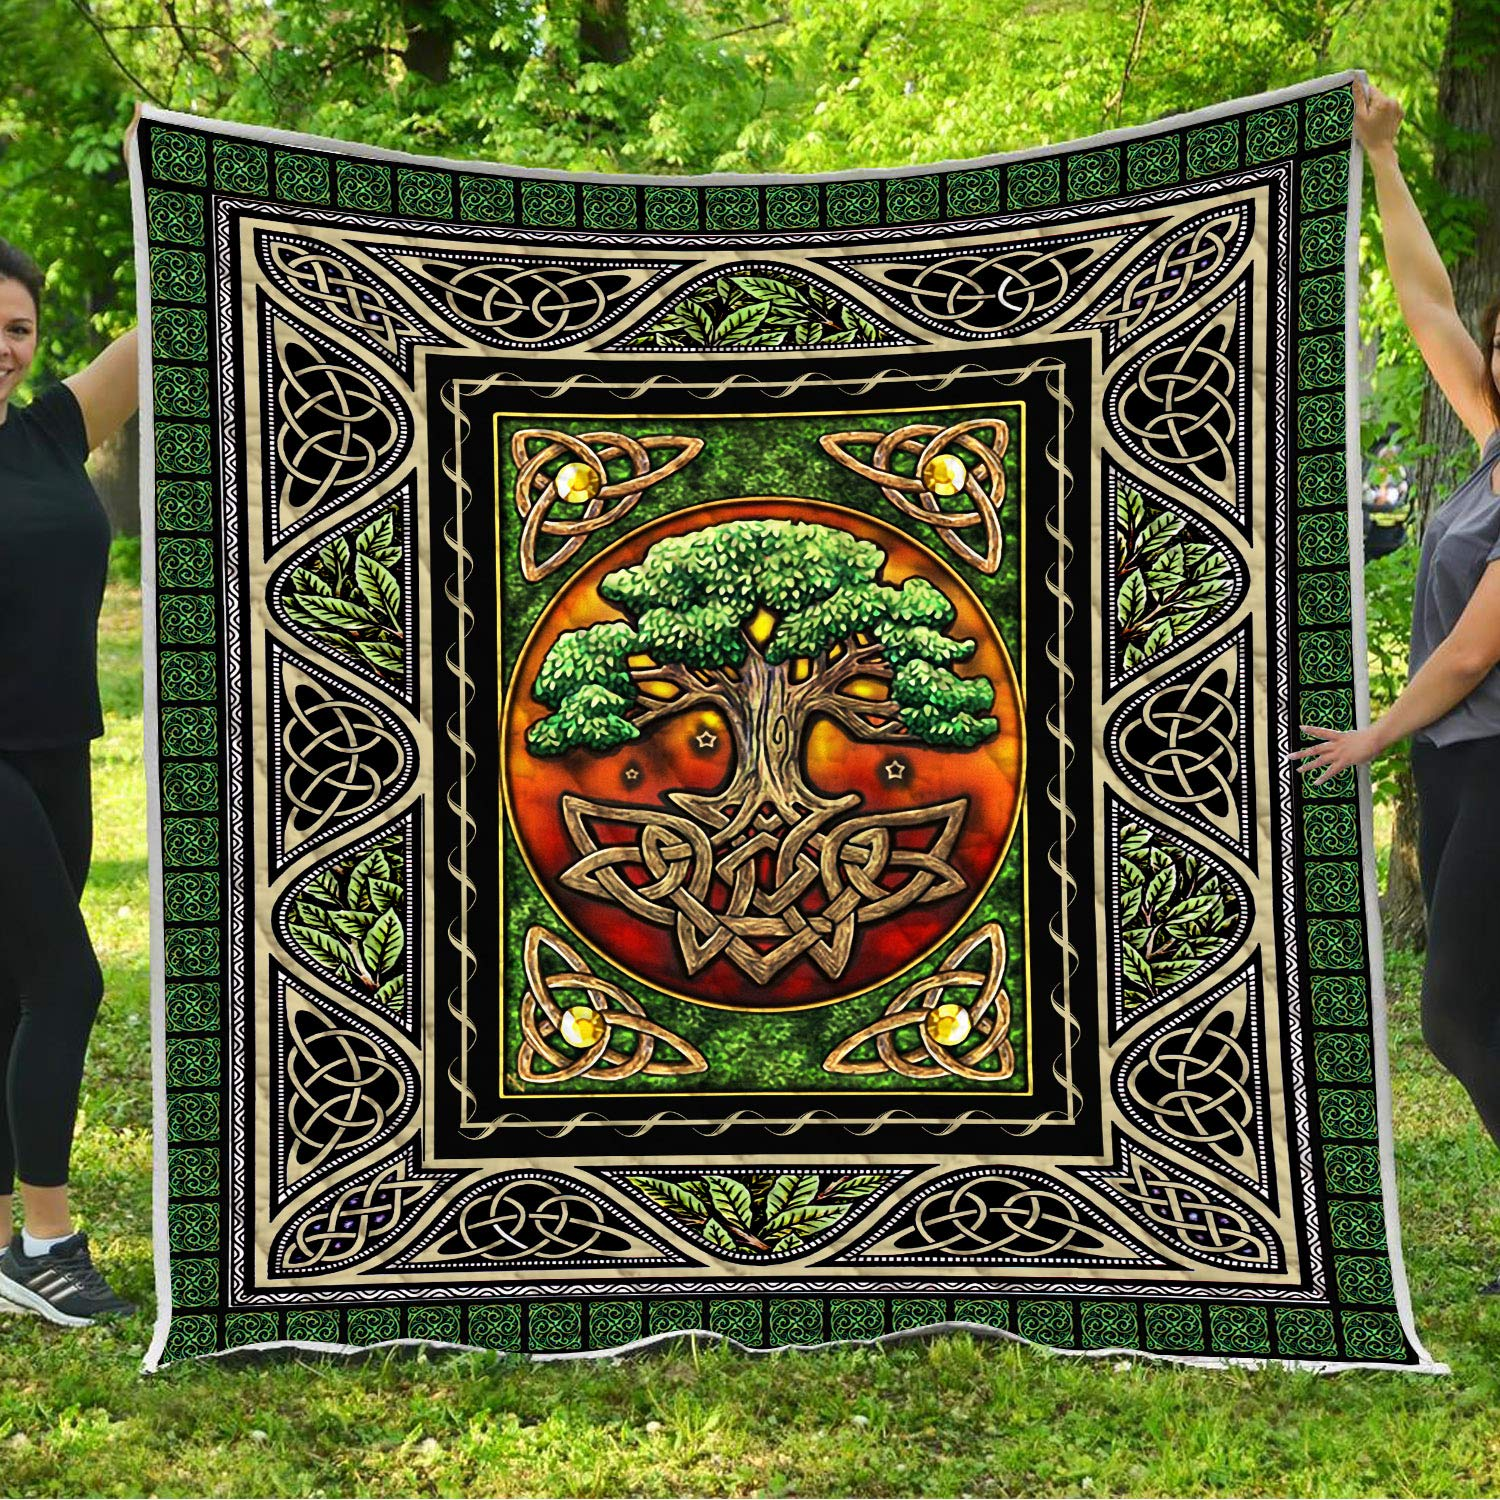 VTH Global Tree of Life Quilt Pattern Blanket Comforters with Reversible Cotton King Queen Full Twin Size Irish Celtic Trinity Knot Quilted Birthday Gifts for Men Women Dad Mom Boys Girls by VTH Global